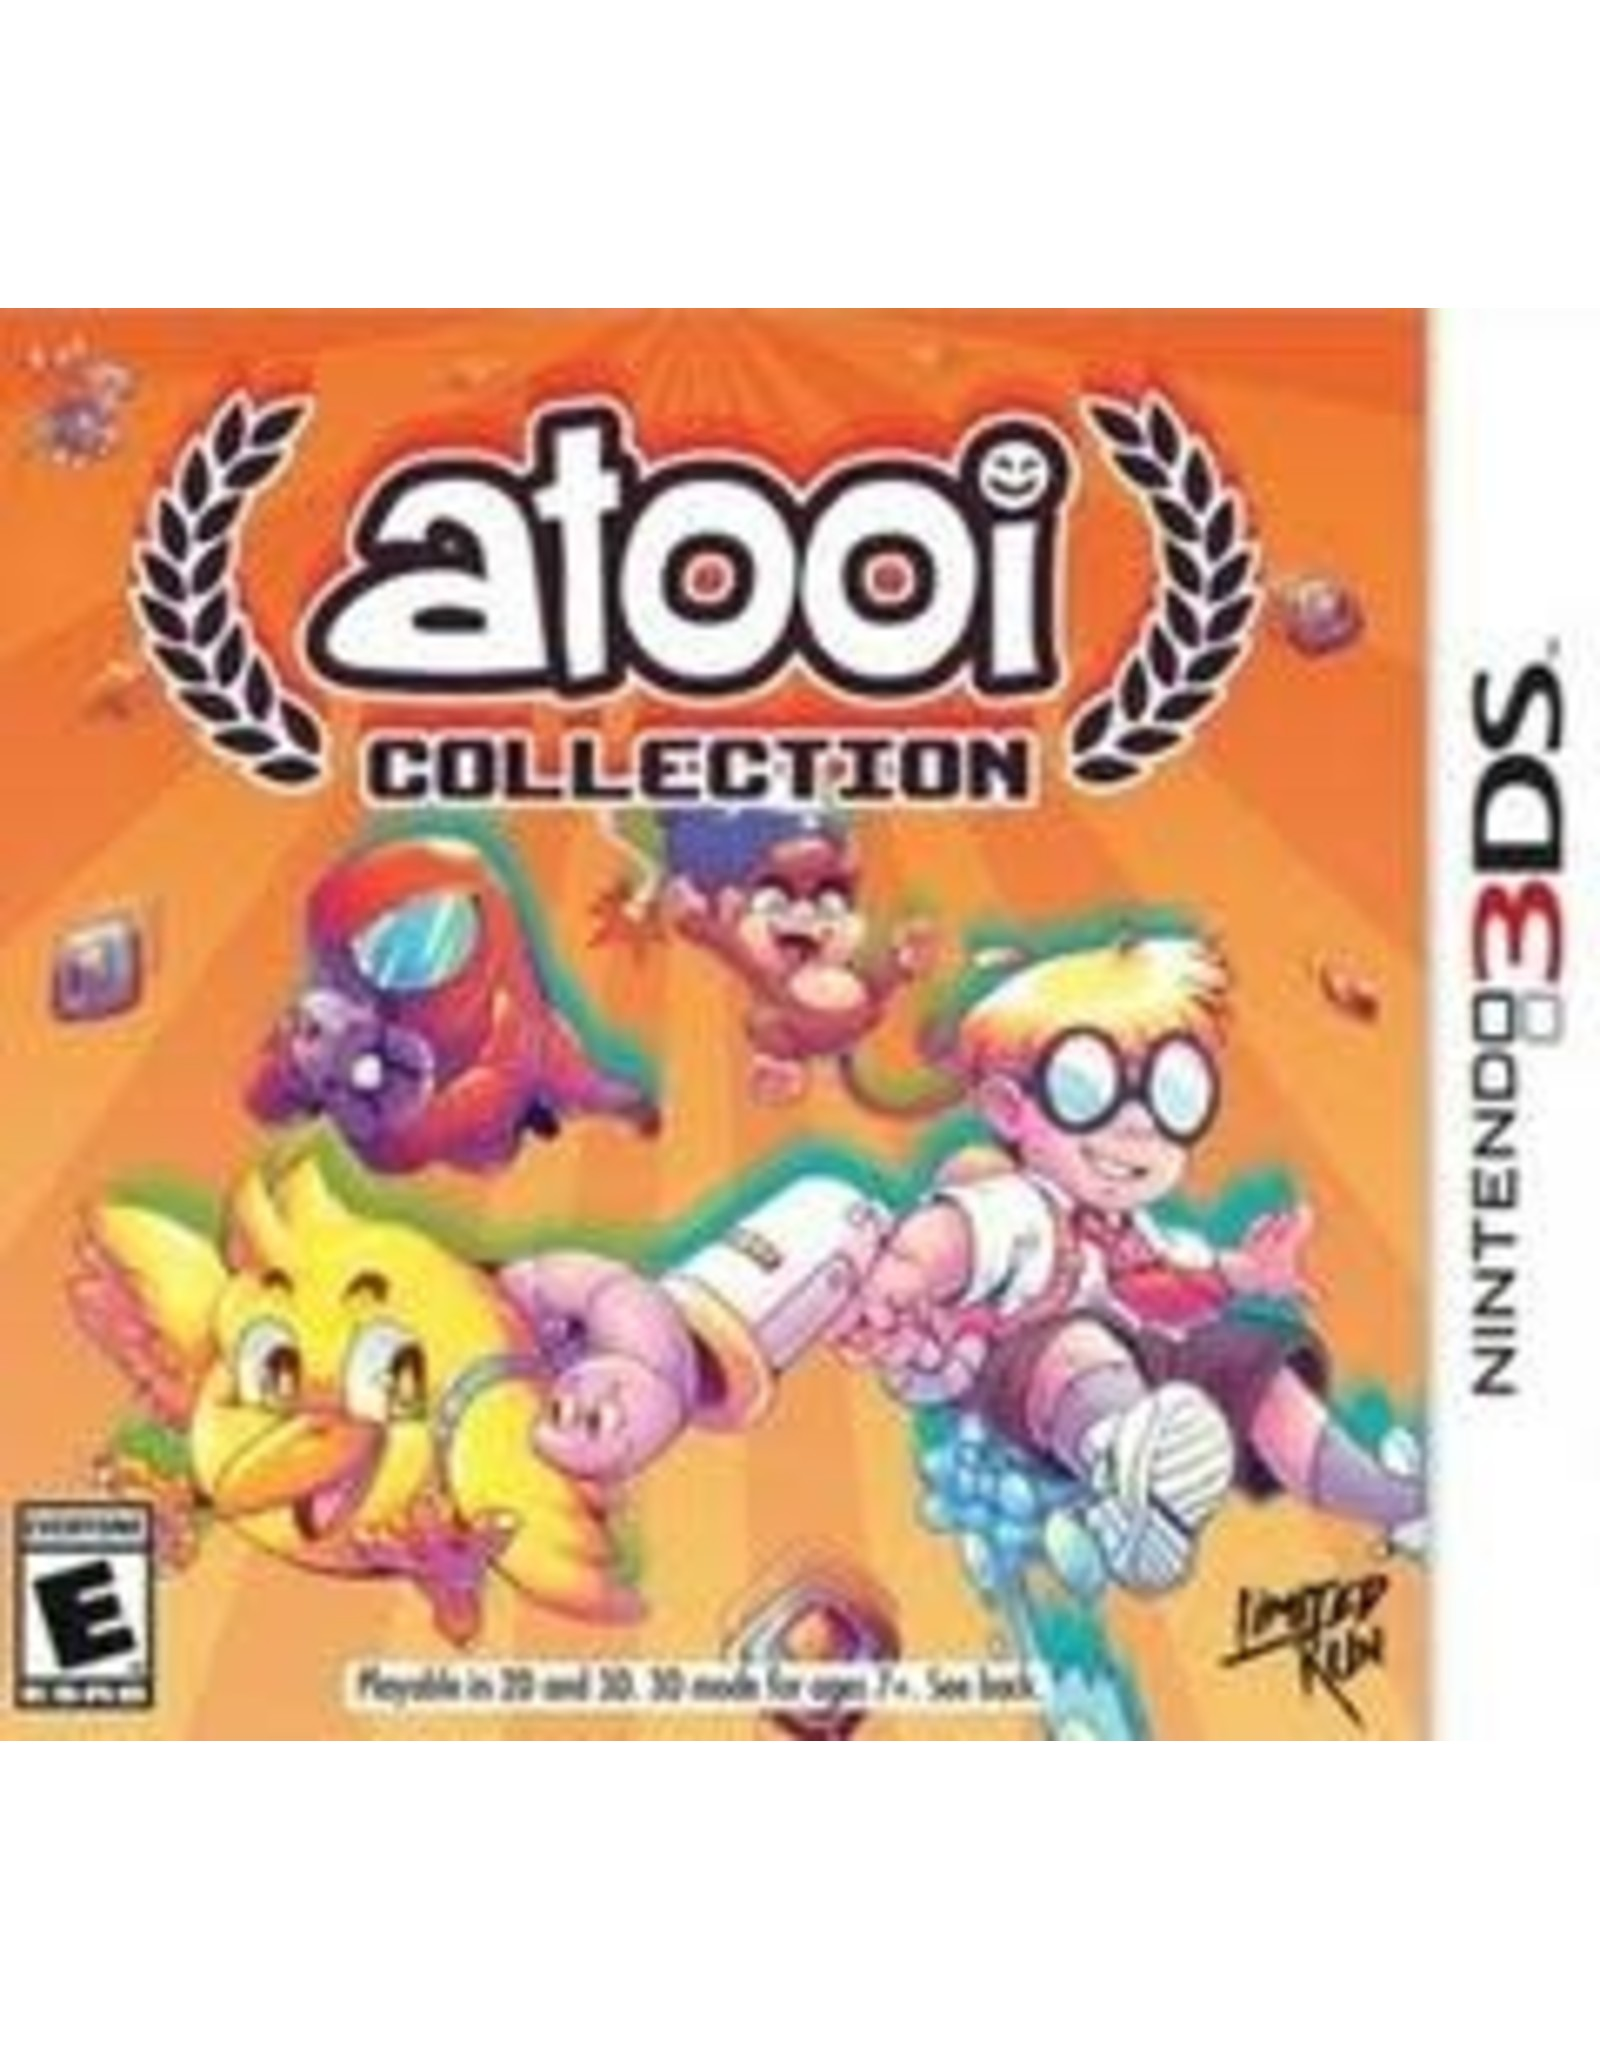 Nintendo 3DS Atooi Collection (LRG #001, Brand New)